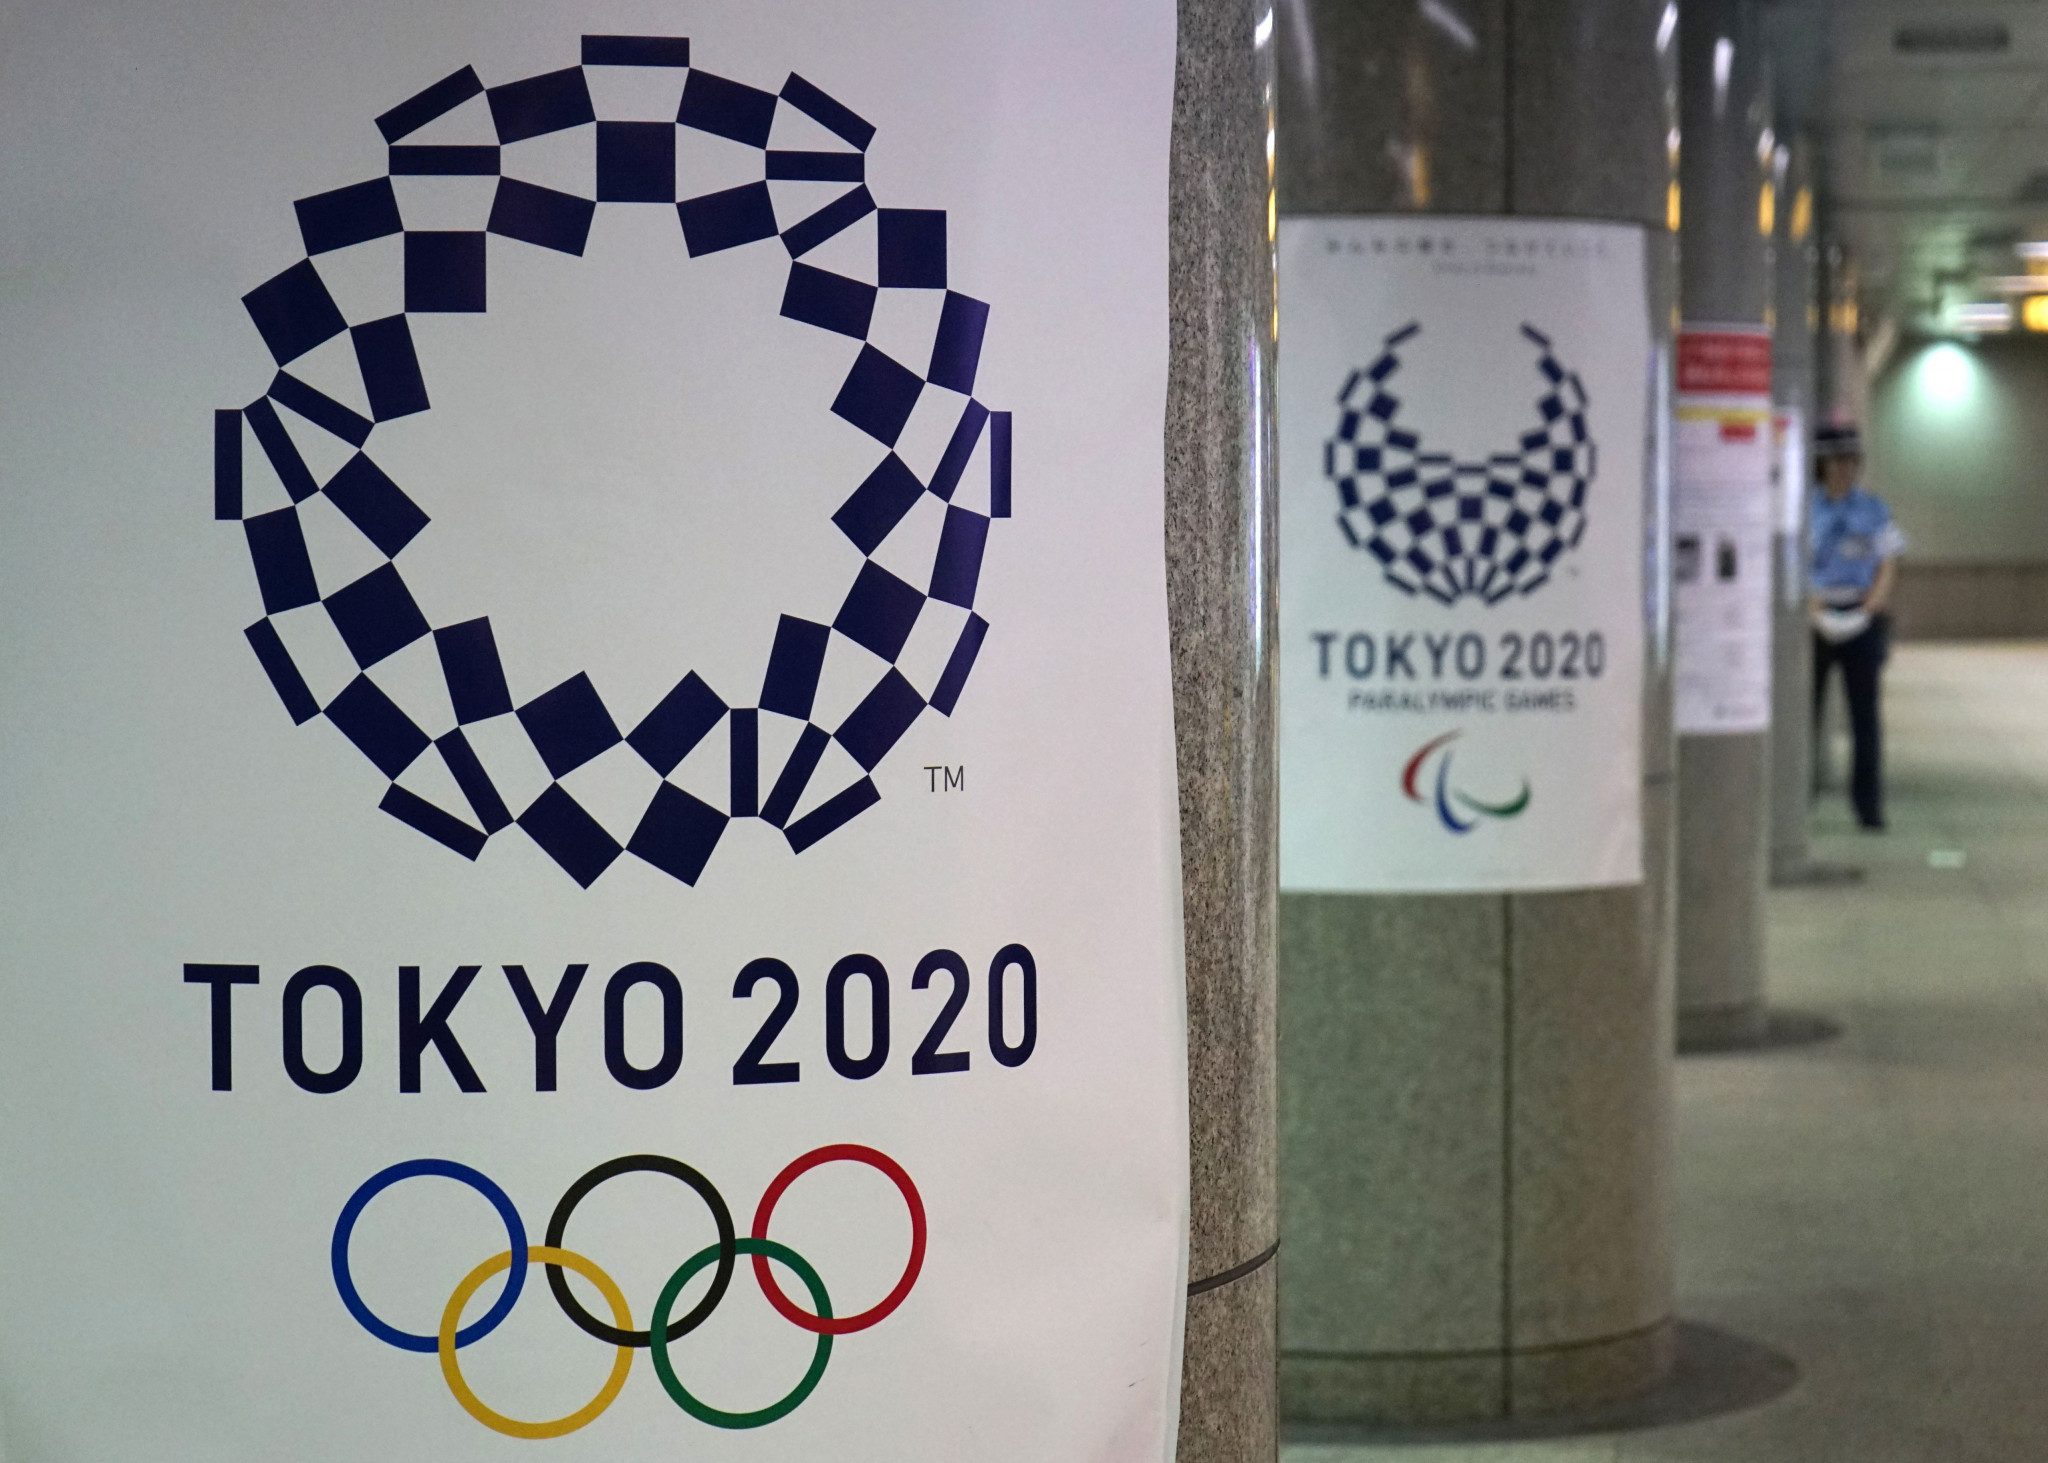 It has been found that Japanese sport governing bodies which will be present at Tokyo 2020 will not be meeting a gender equality target ©Getty Images